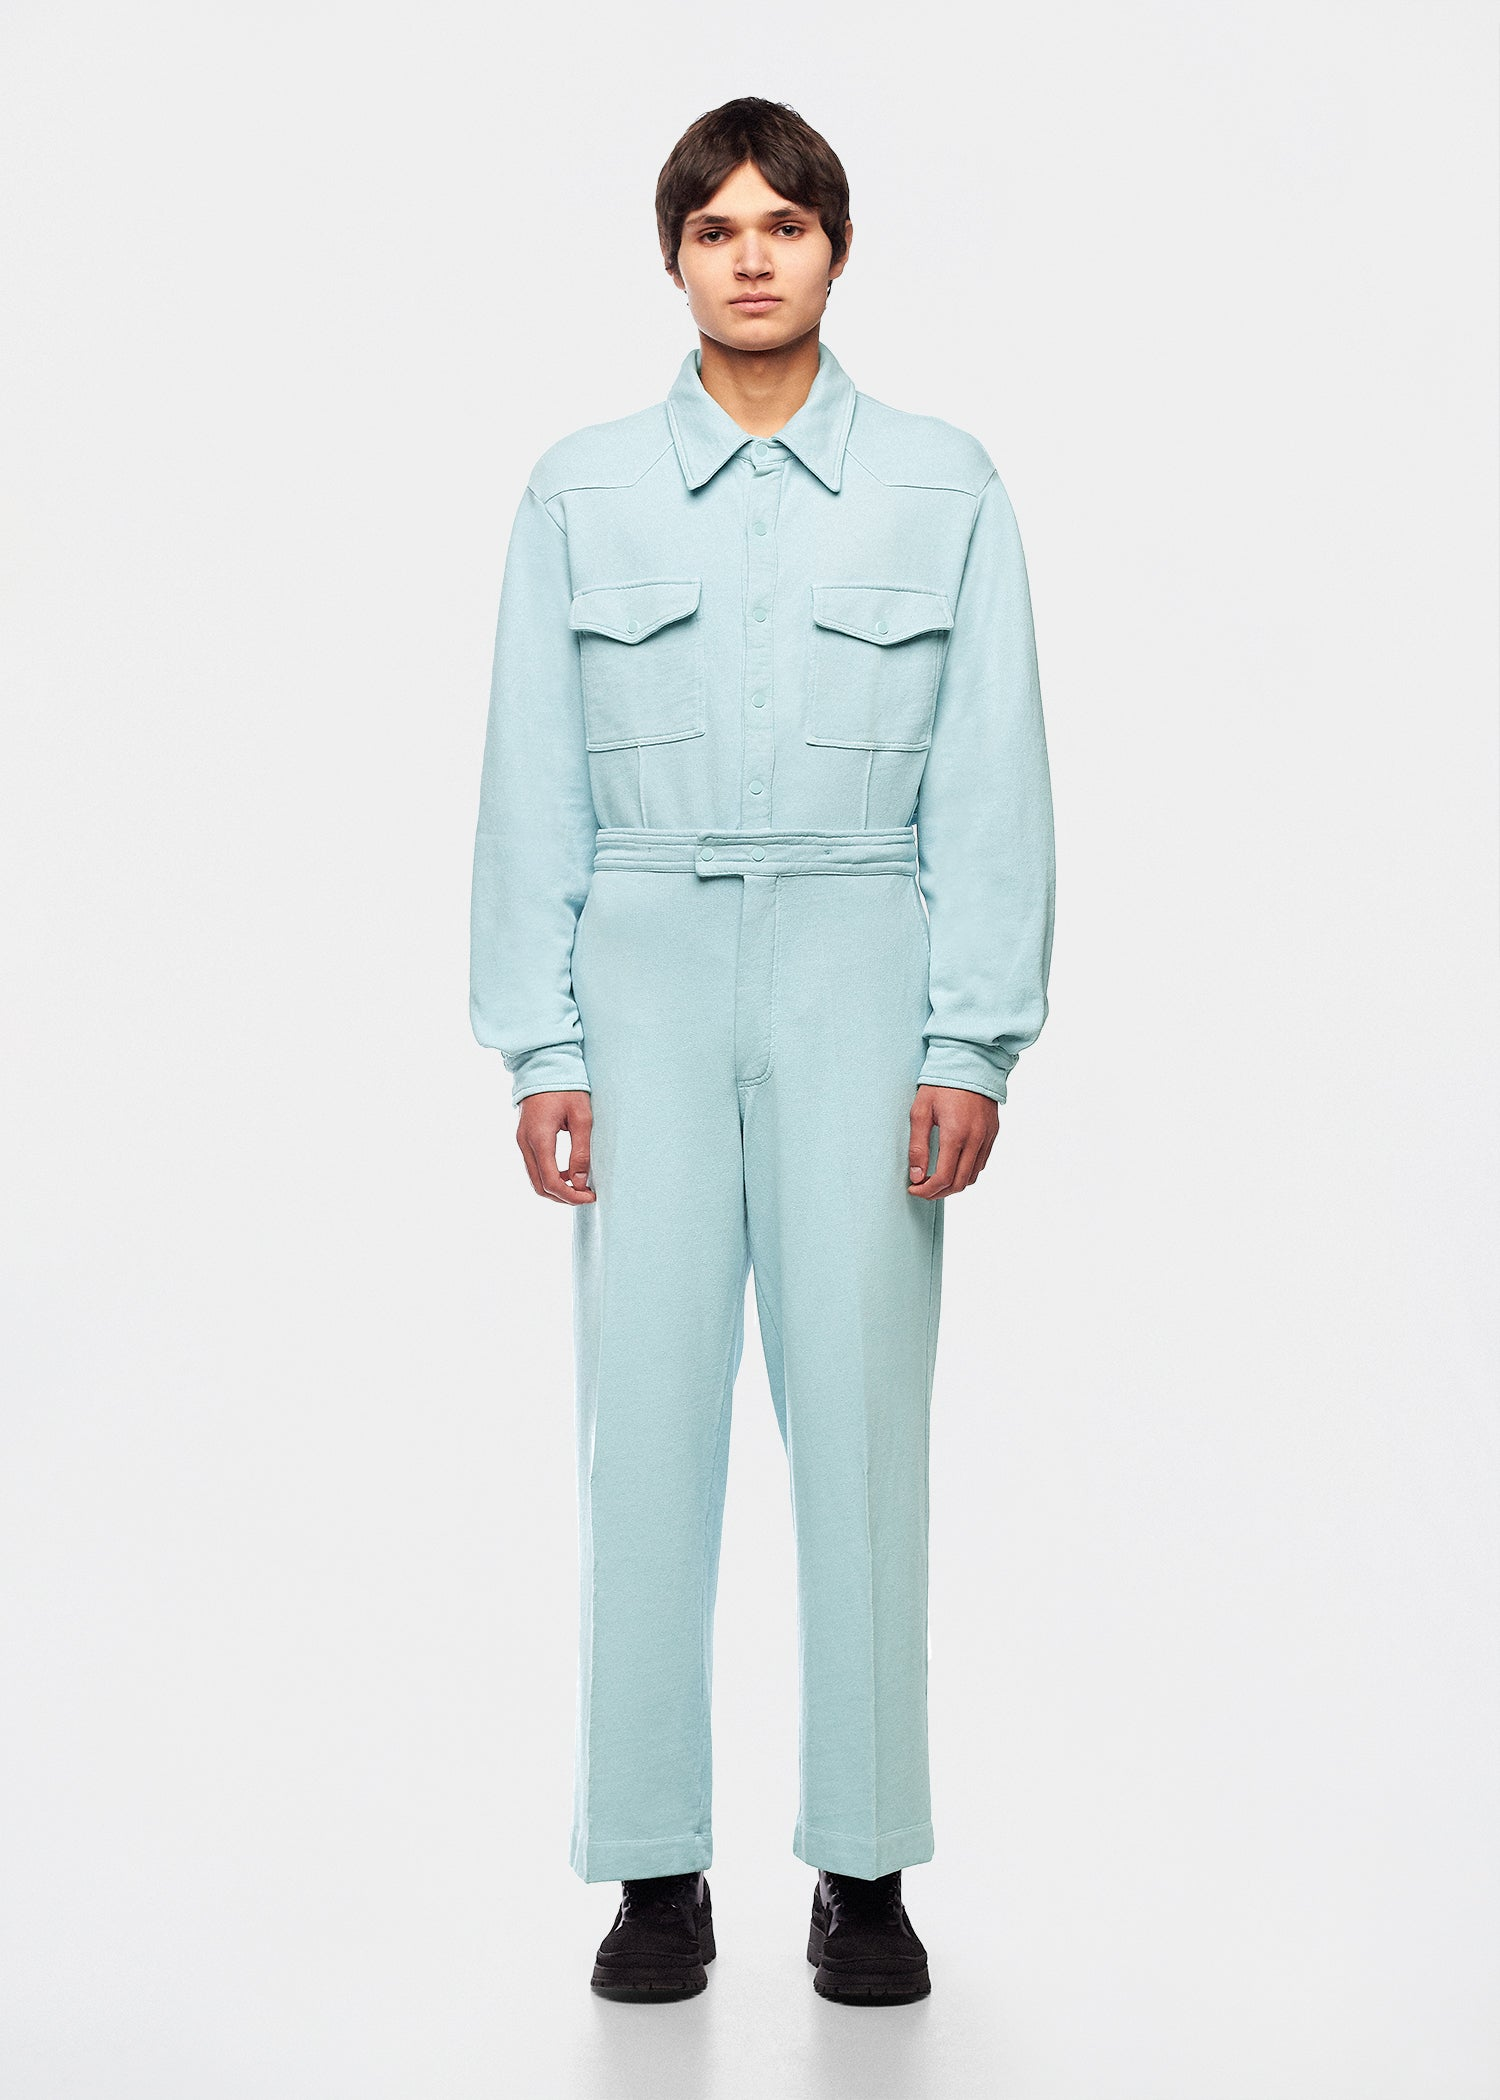 PENELOPE BLUE TROUSER